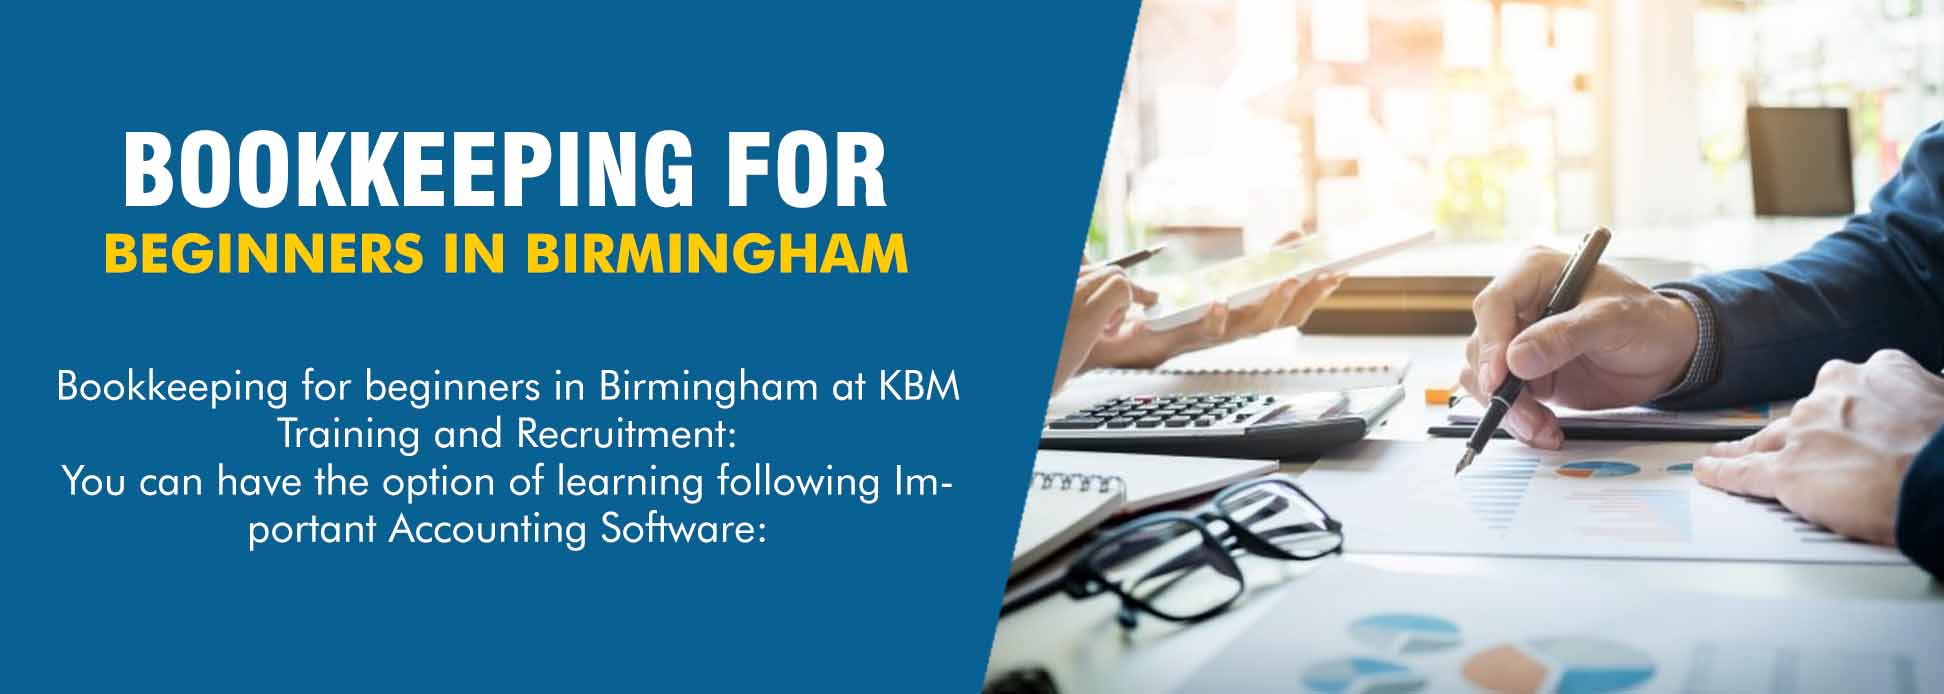 bookkeeping-for-beginners-in-birmingham